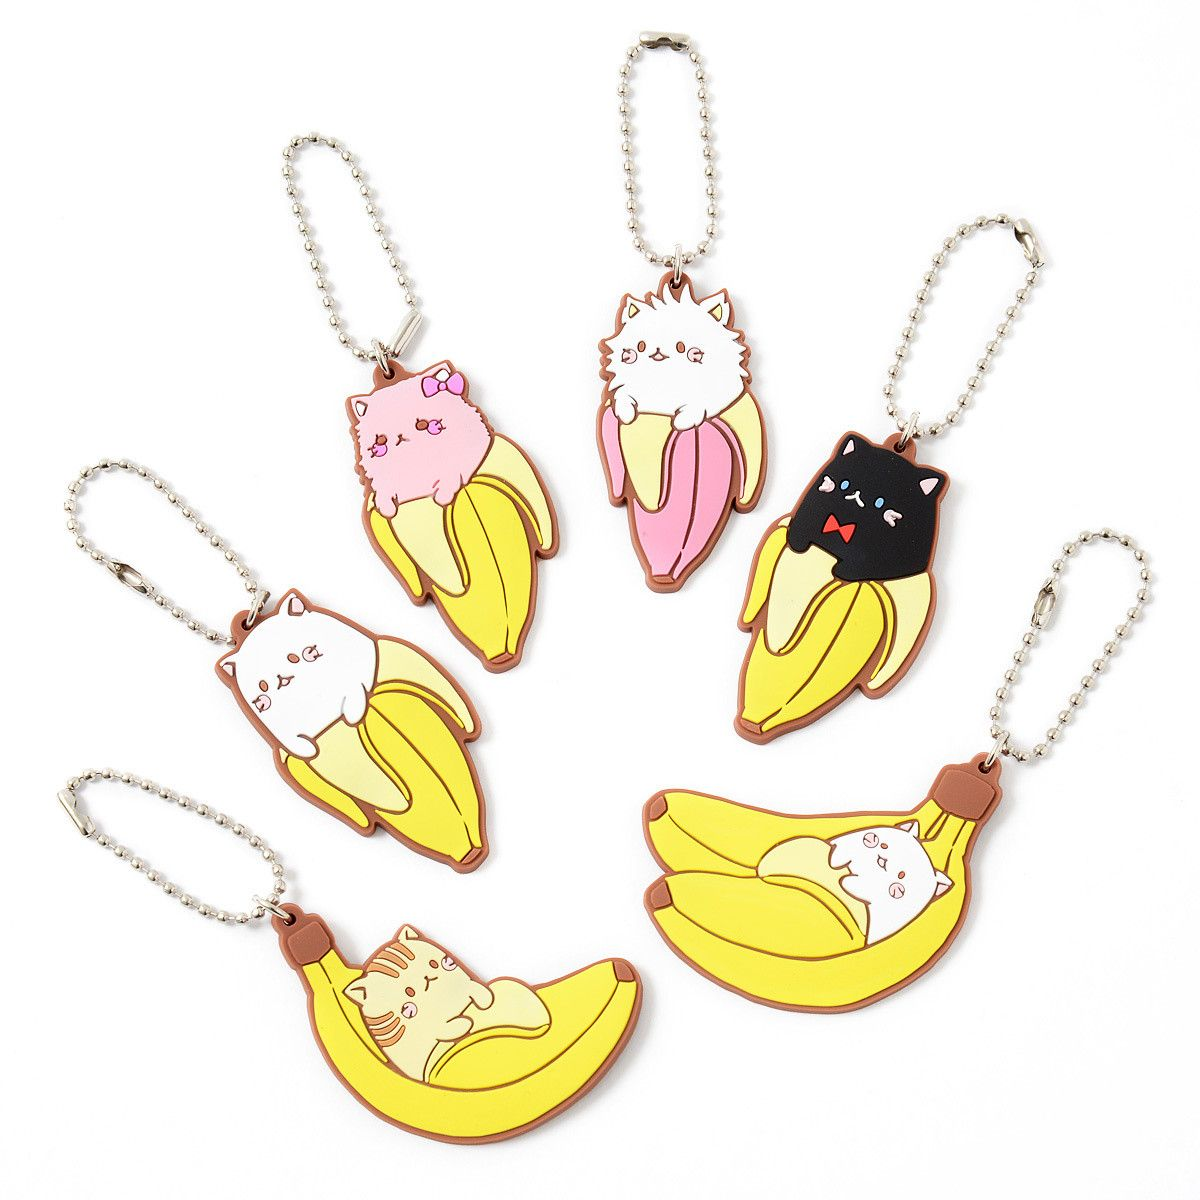 """These fun novelty **keychains** have a silly Japanese pun at their root which is sure to keep you laughing all day long! In Japan, cats go """"nya"""" so a Bananya is a banana with a cat inside - isn't that just so funny?   The full lineup includes **Bananya**, **Black Bananya**, **Kiddy Bananya**, **Fluffy Bananya**, **Bananya (Goron)** and **Tiger Bananya (Goron)** each of which is about **2.2""""** in size. You get **one random keychain** per order so you won't know exactly which flavor of…"""